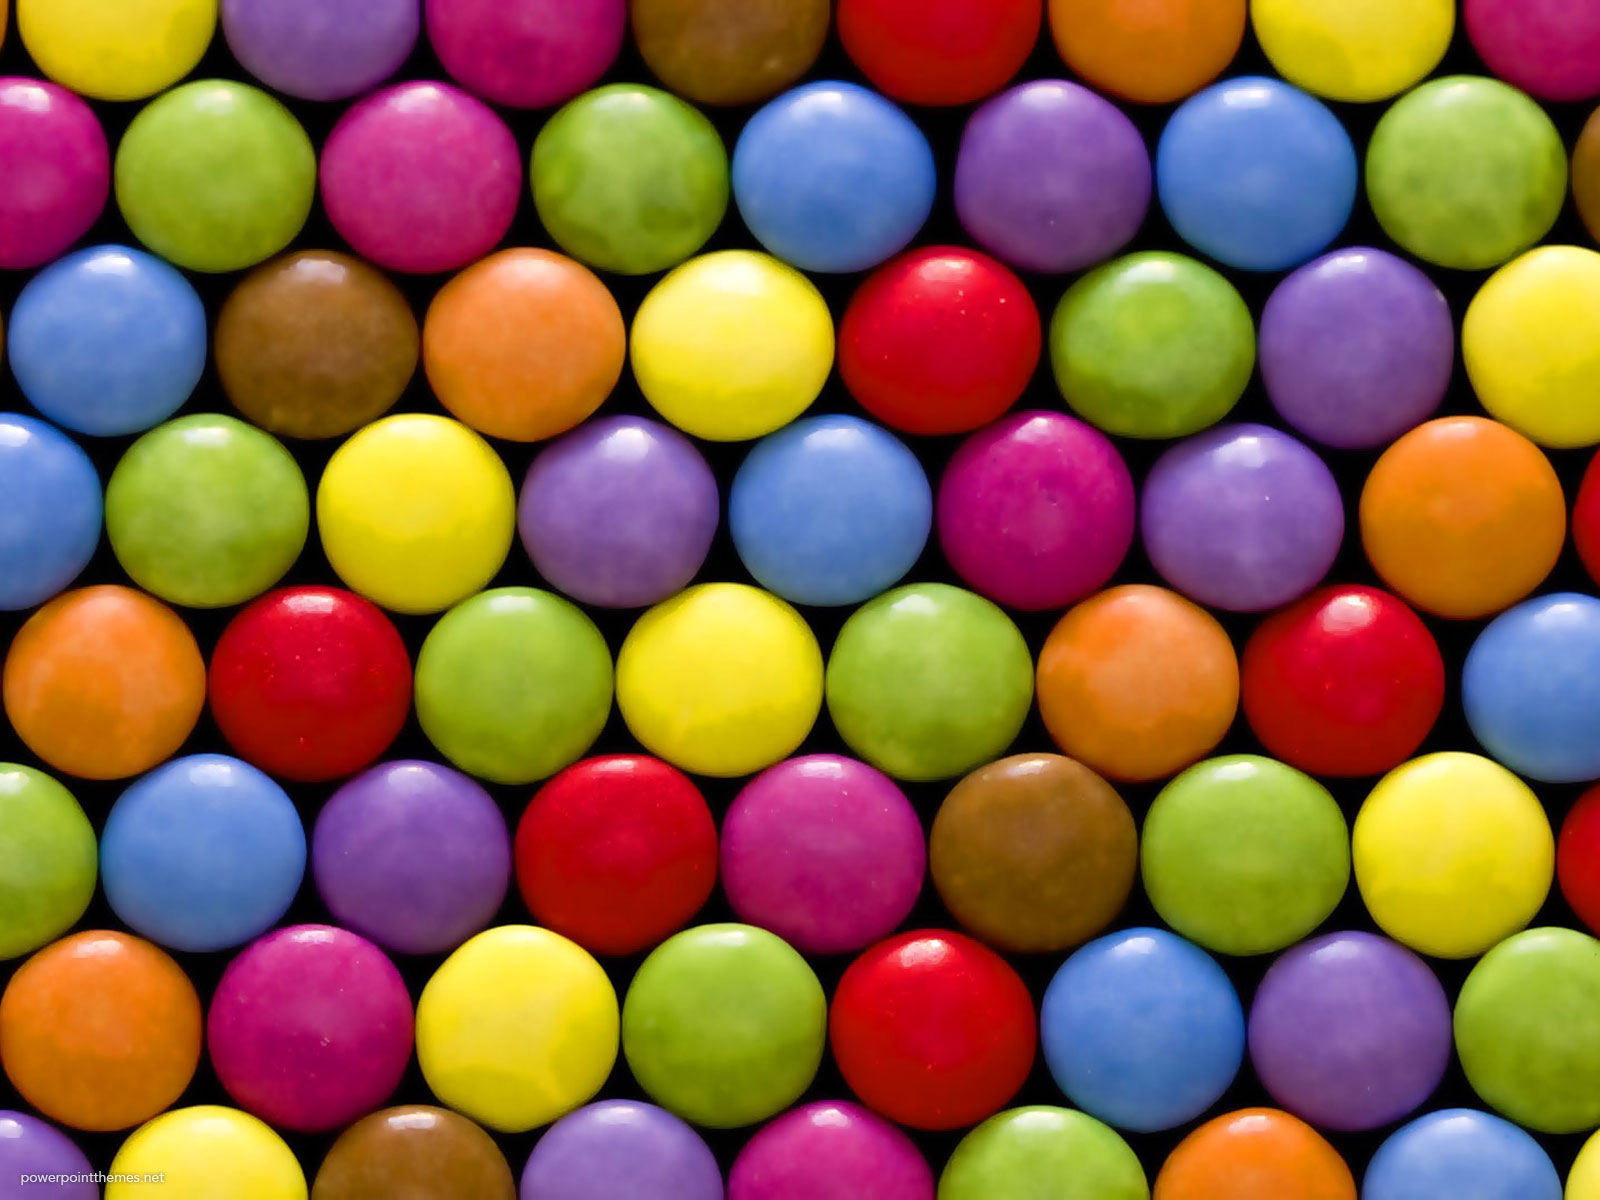 colorful candy wallpaper 8 - photo #32